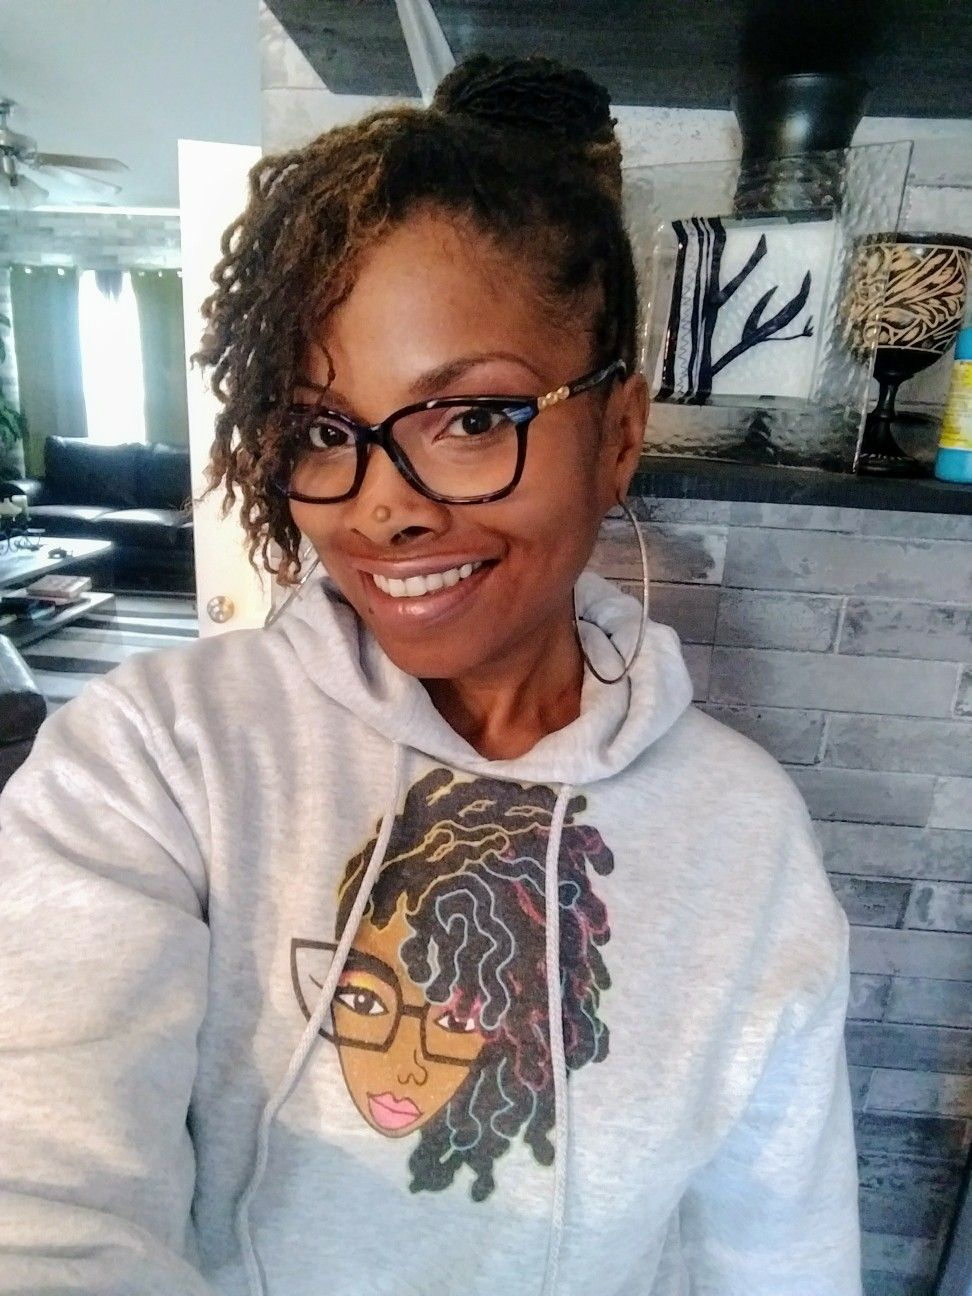 Pin by Denise Toliver on Hair StoriesuuHis u Hers  Pinterest  Locs